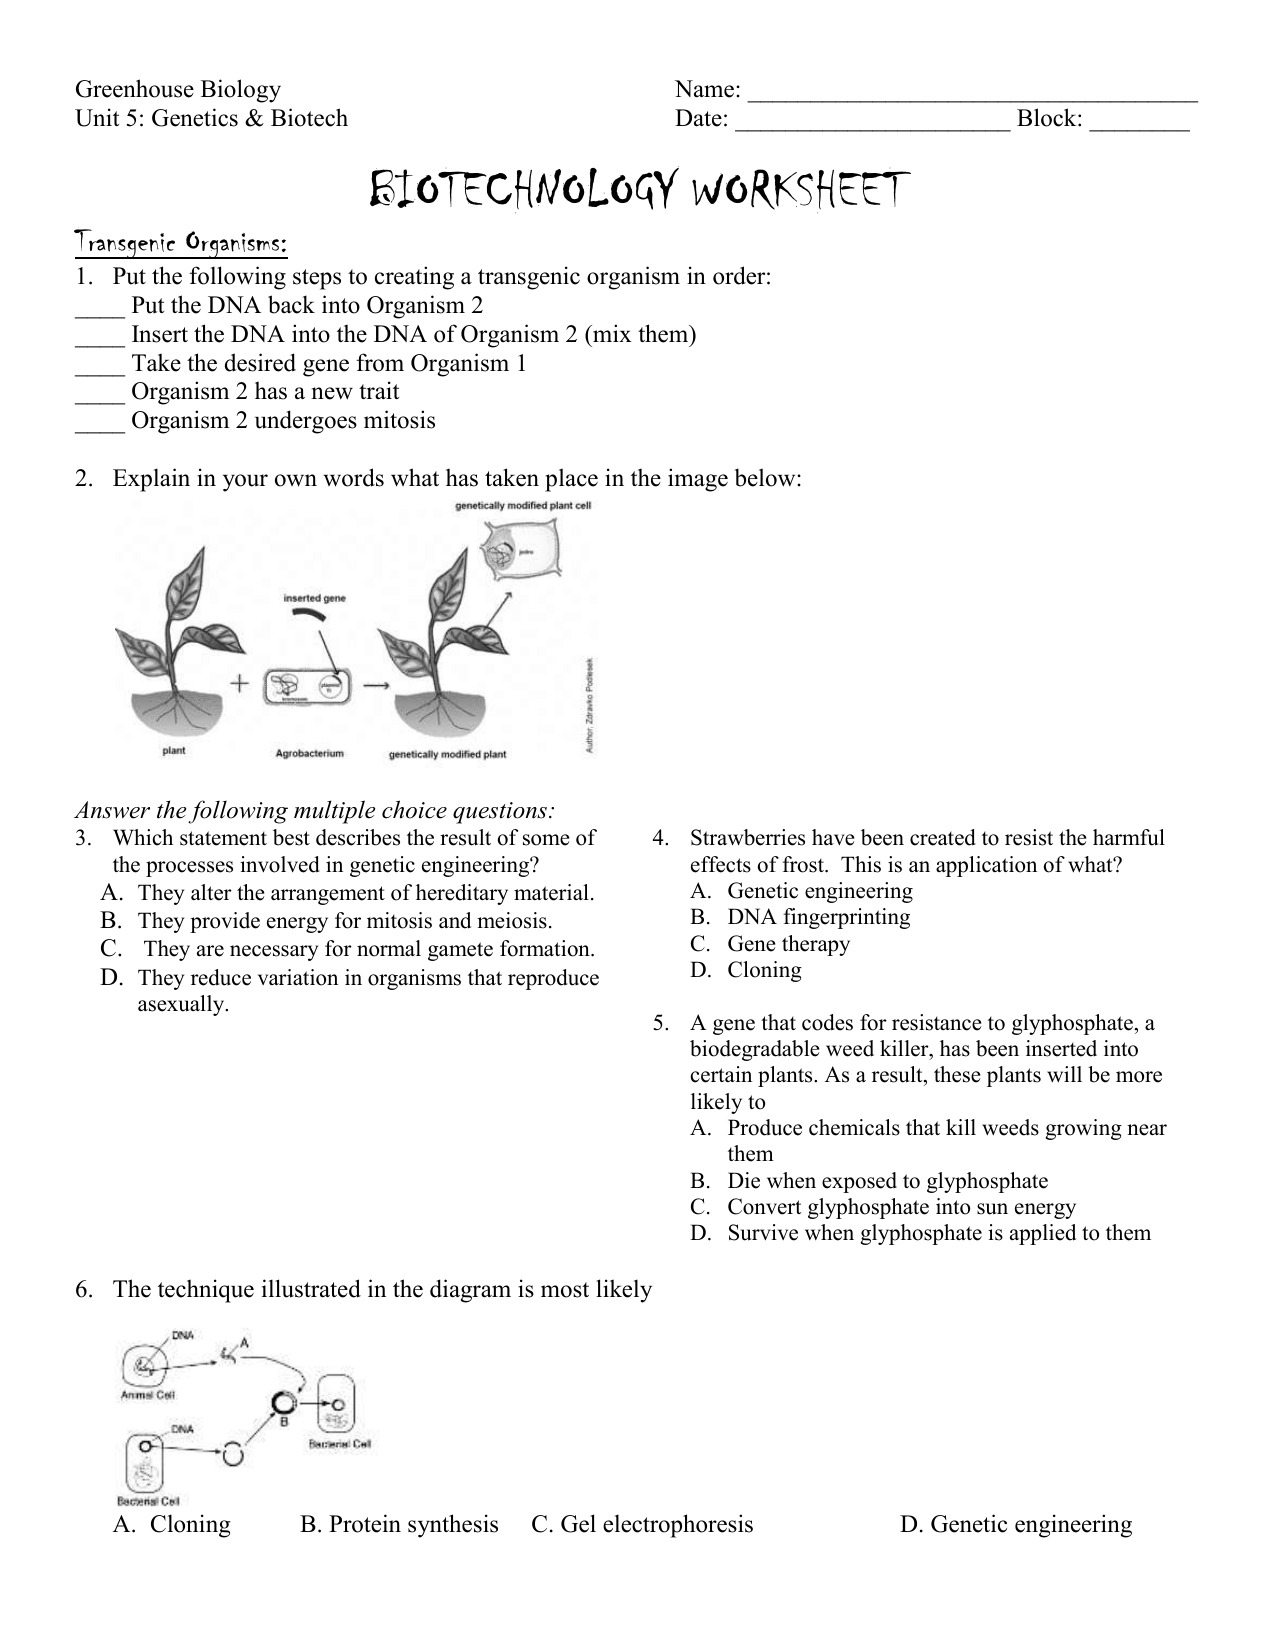 Biotechnology Worksheet